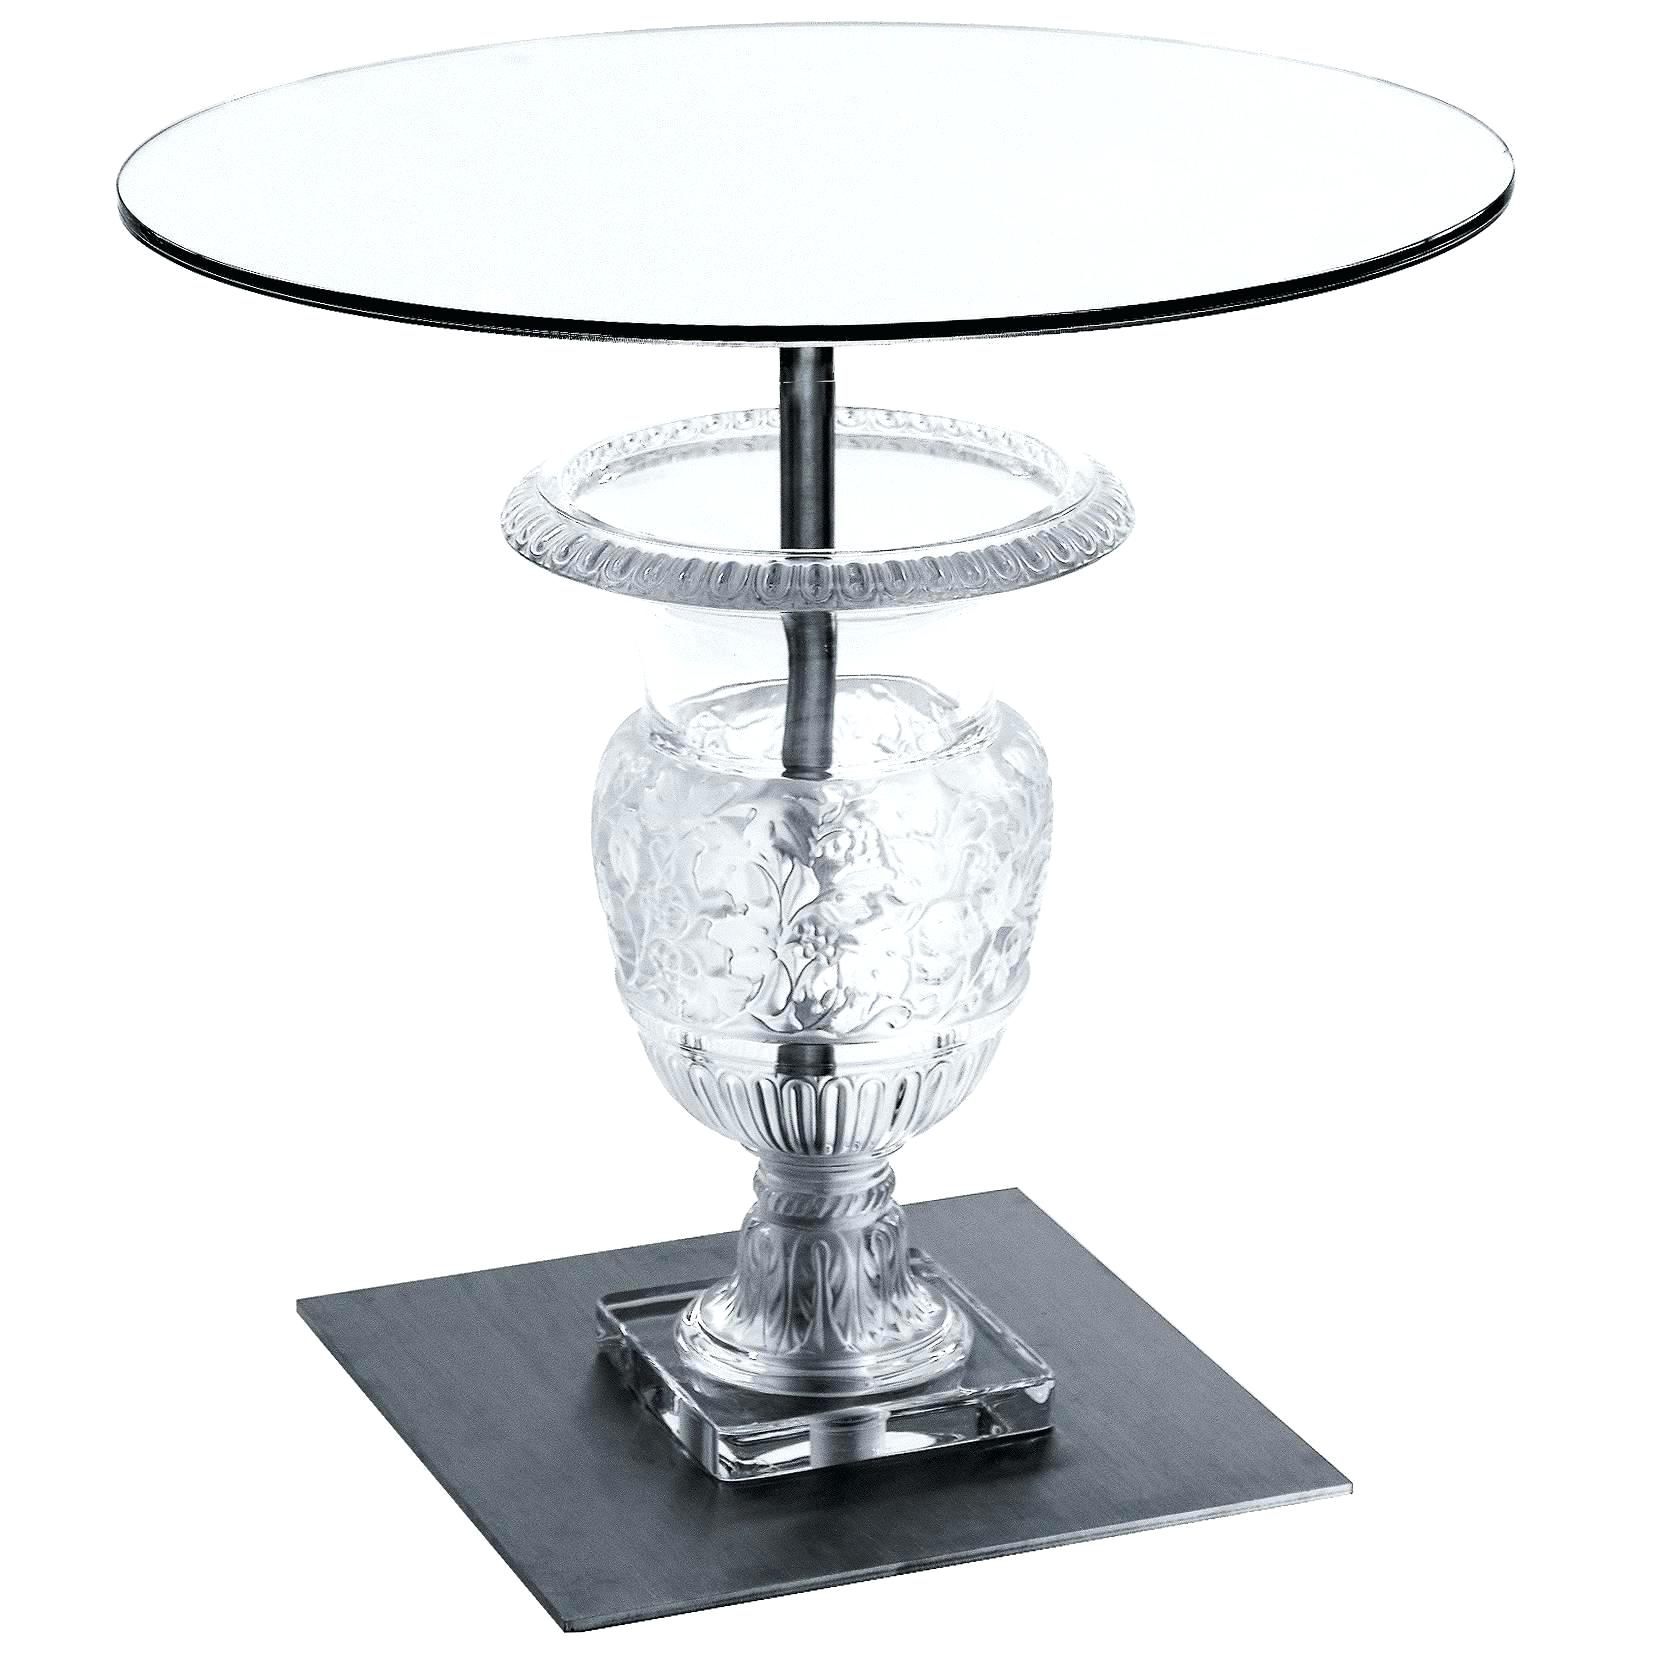 clear accent table crystal pedestal side for acrylic zella top ideas tablecloth factory chandelier bedside lamp screw wooden legs home goods tables argos garden and chairs counter